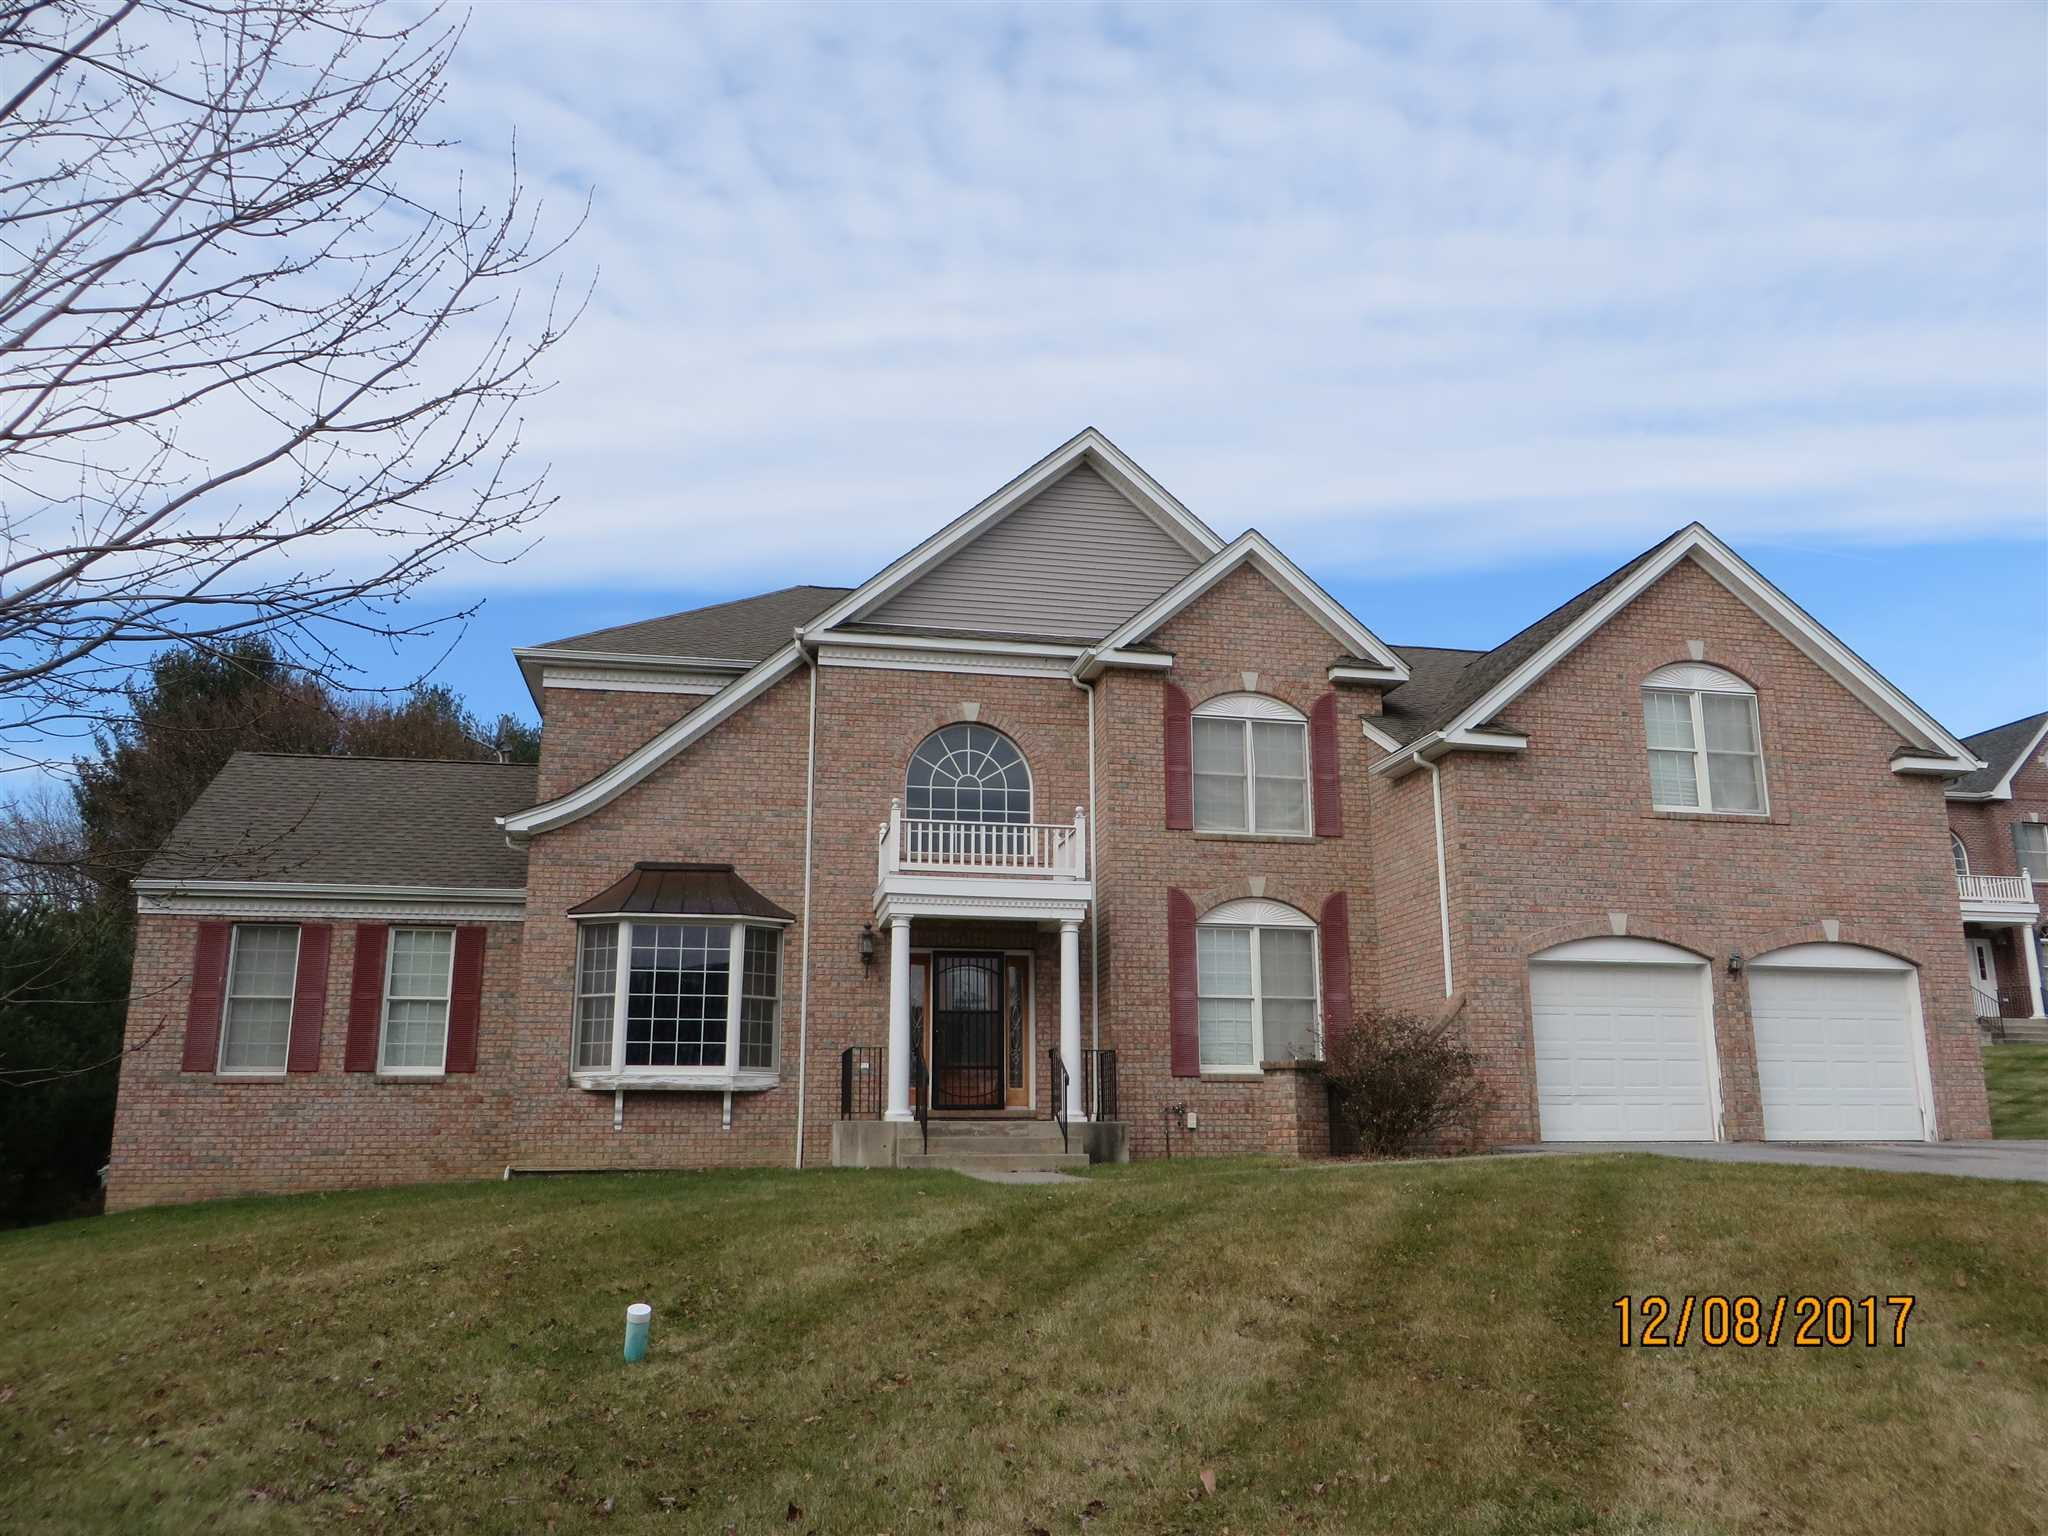 Single Family Home for Sale at 20 OLD FIELD 20 OLD FIELD Poughkeepsie, New York 12603 United States